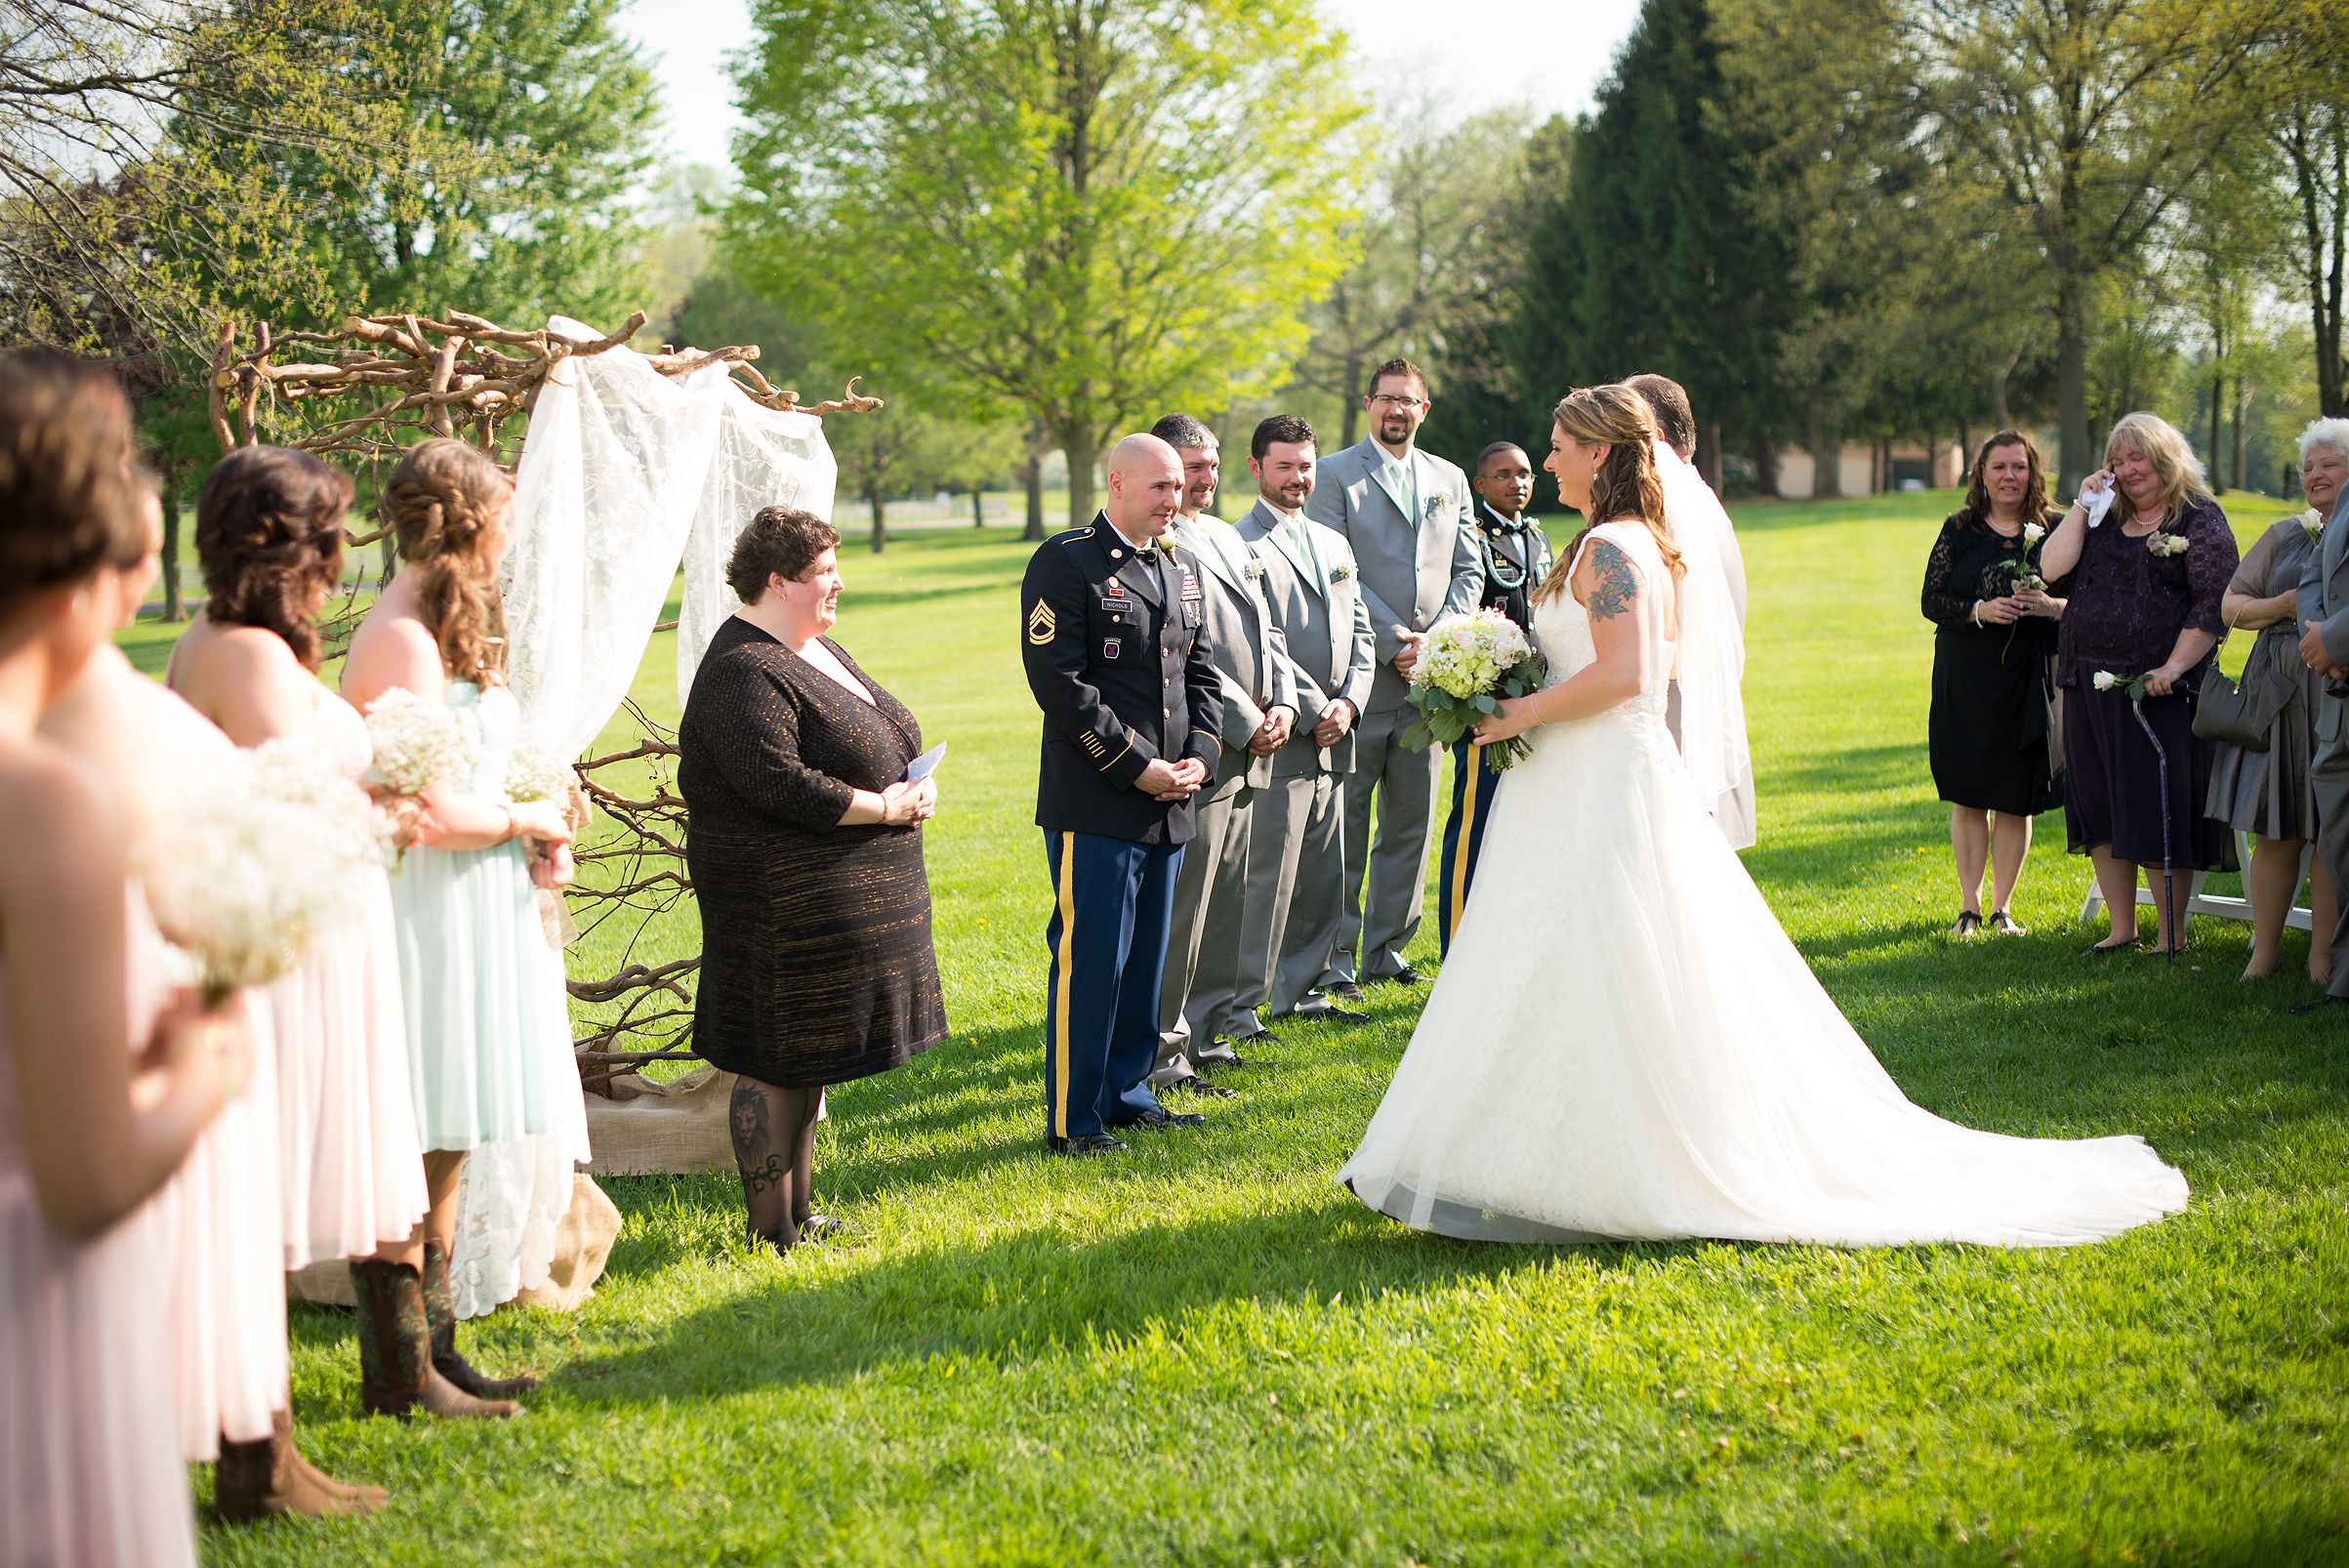 Outdoor ceremony simple vintage inspired wedding Brookside